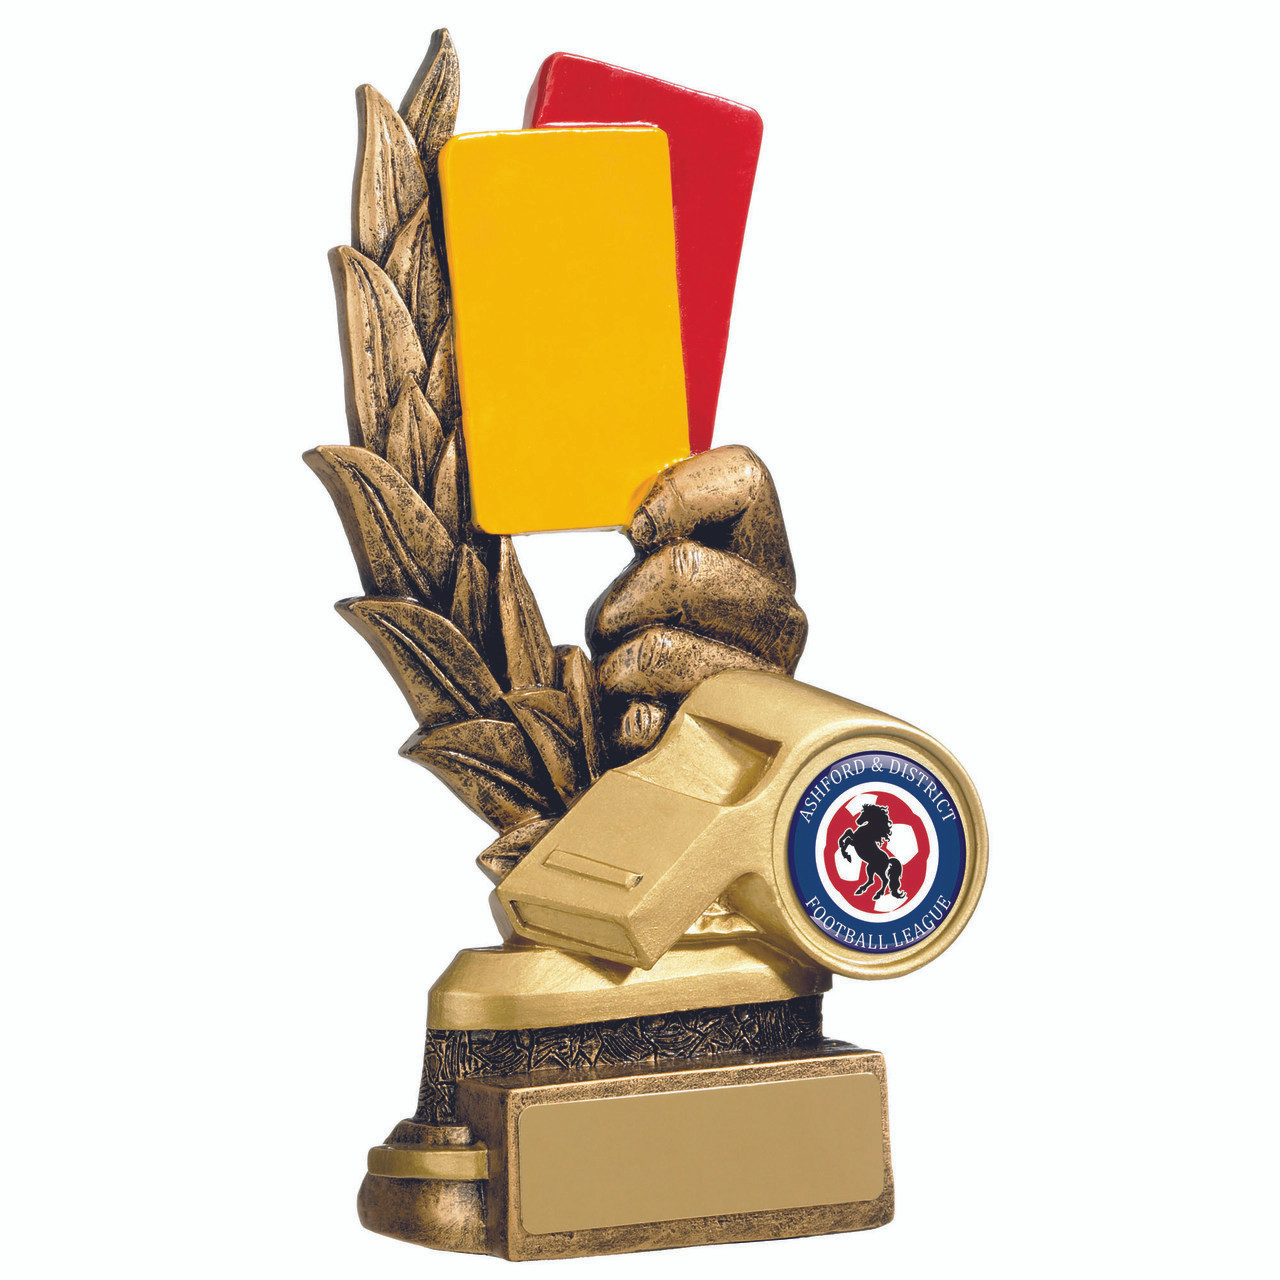 Whistle Referee Football Official's Award